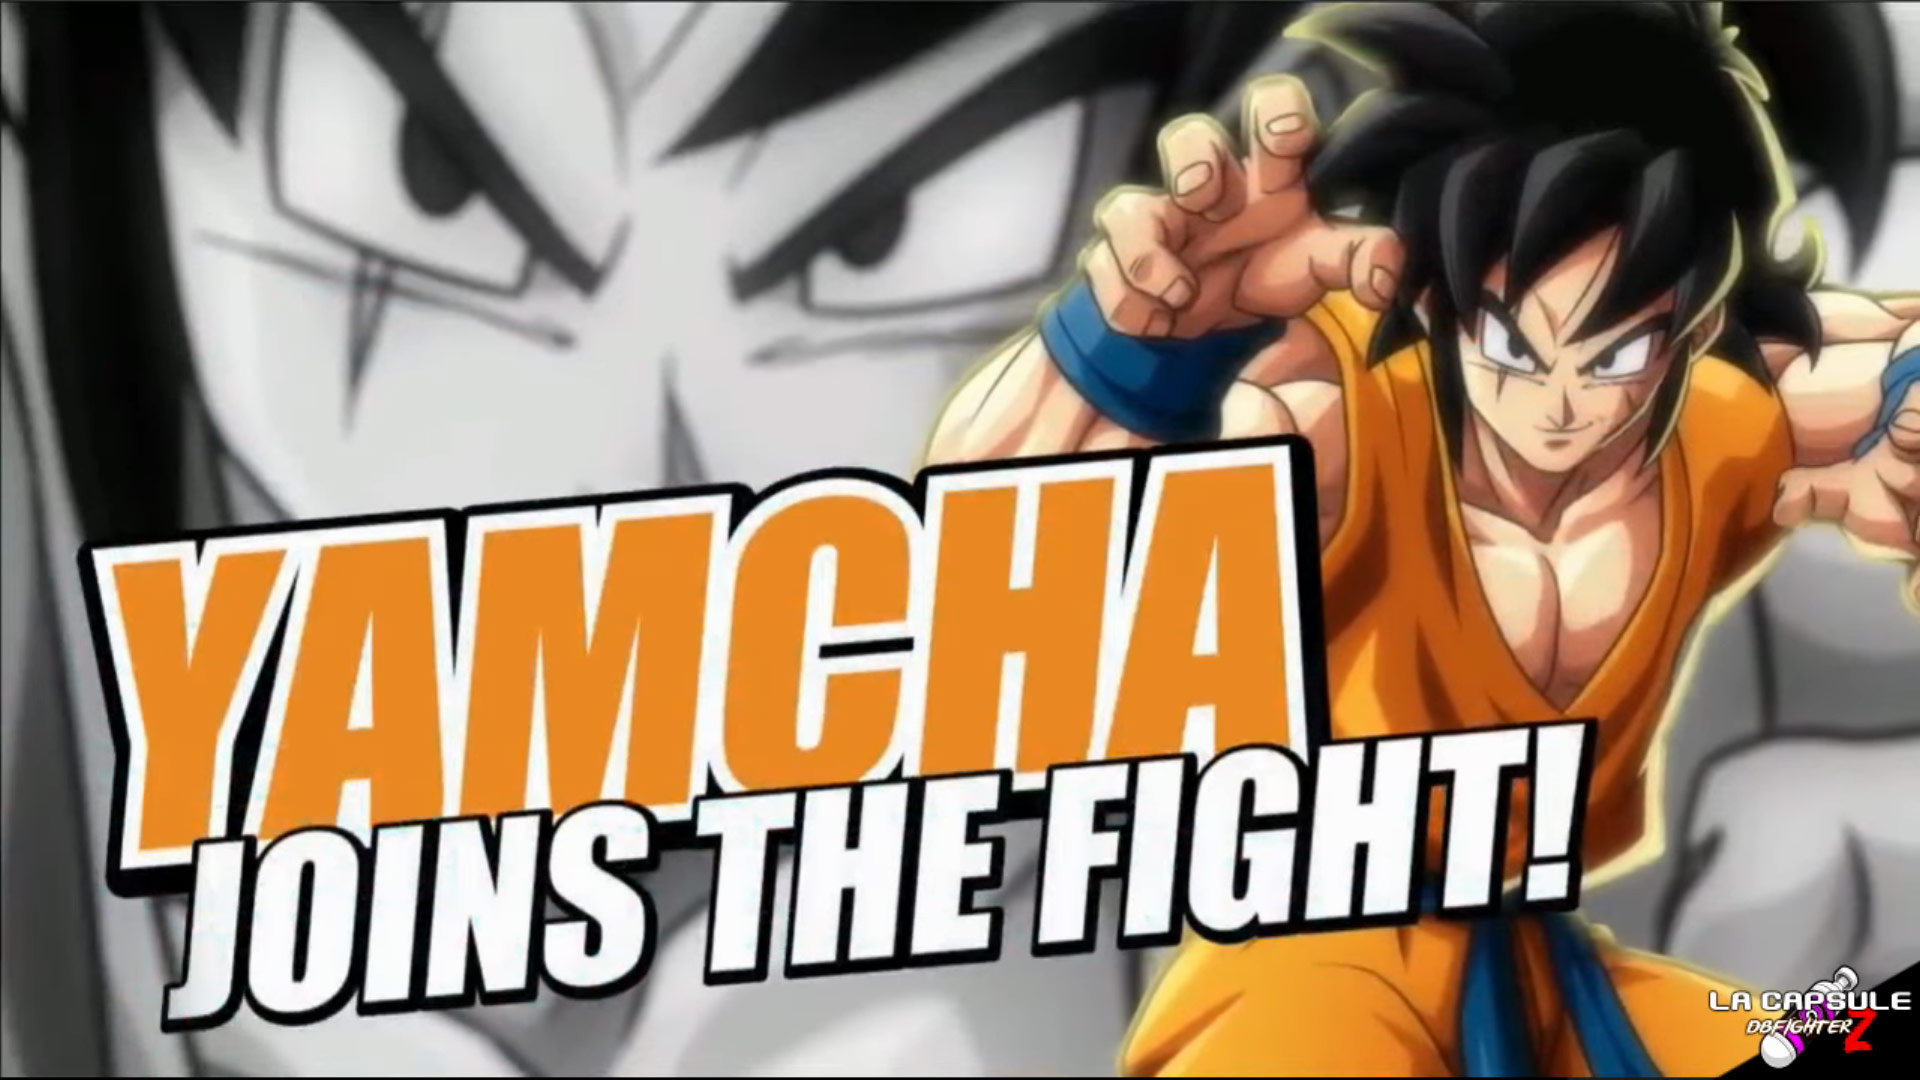 Yamcha and Tenshinhan Gameplay Trailer Gallery 2 out of 6 image gallery